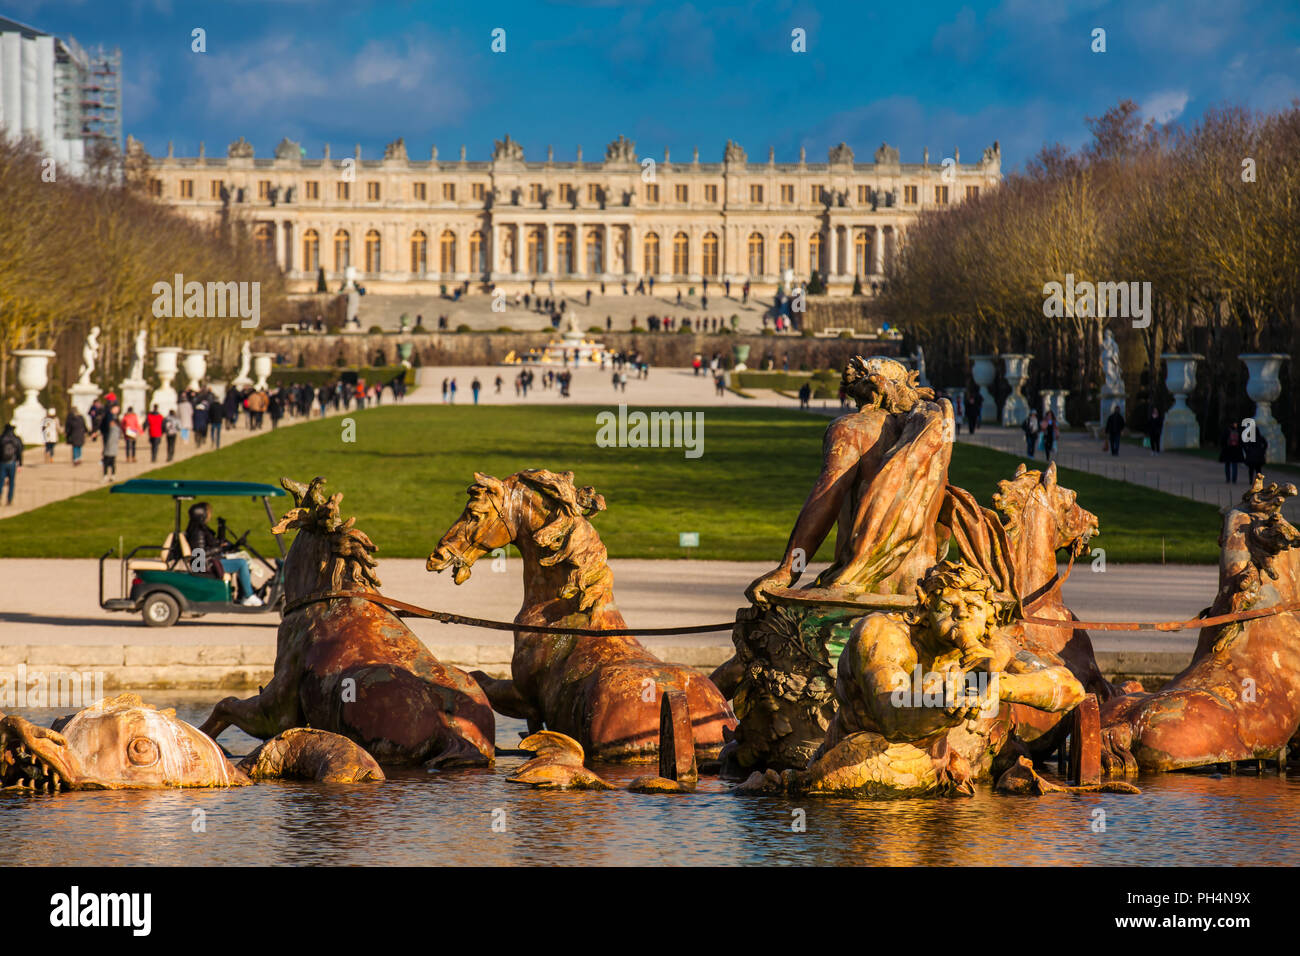 Fountain of Apollo at the garden of the Versailles Palace in a freezing winter day just before spring Stock Photo